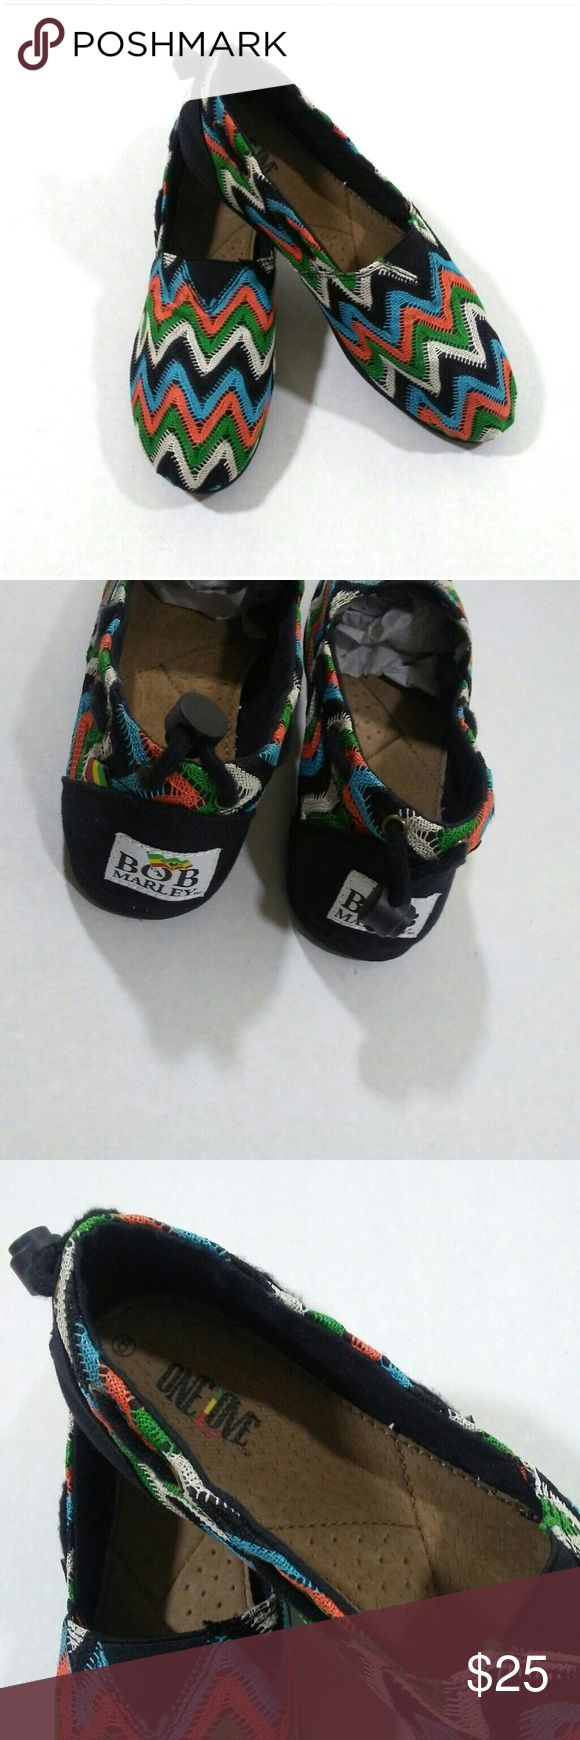 BOB MARLEY woven flats Bob Marley's Women Shoes styled like popular TOMS Bob Marley shoes are part of his woman's collection of eco-friendly rasta shoes with a slim, clean cut classic style. Slip on Size 8 Never worn No Box Bob Marley Shoes Flats & Loafers